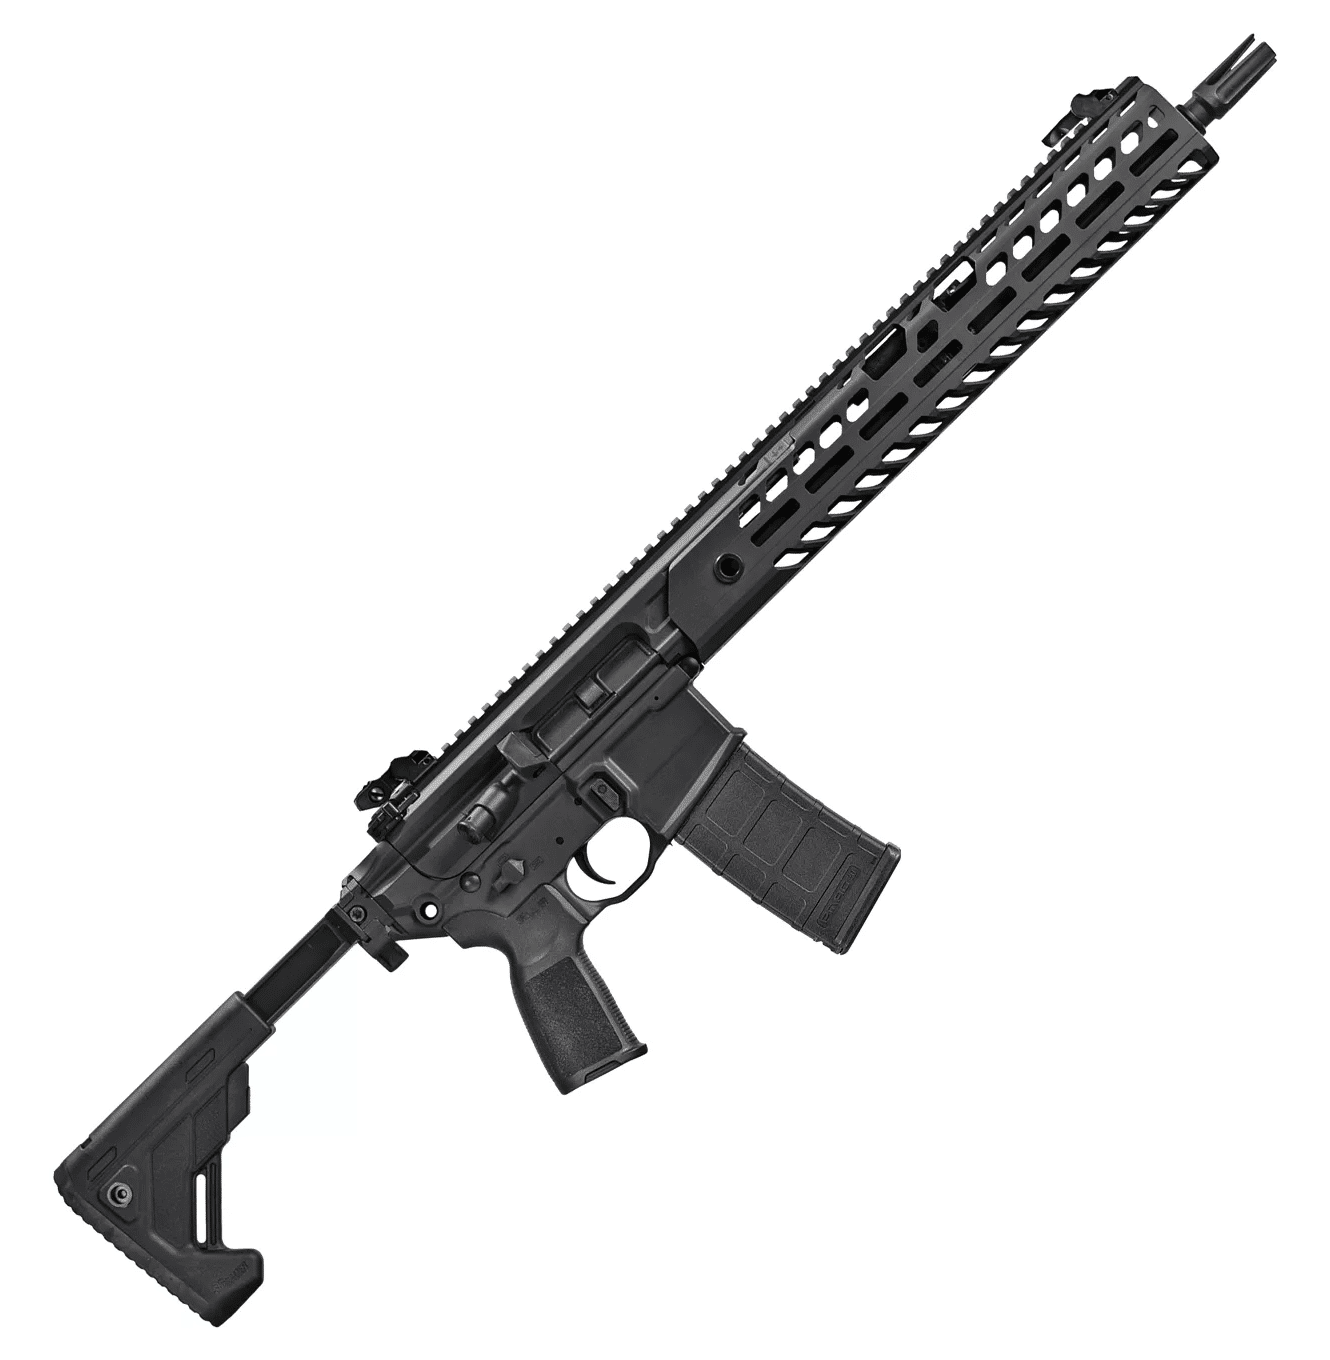 Sig Sauer MCX Noctis Patrol Semi-Auto Rifle with Folding Sights